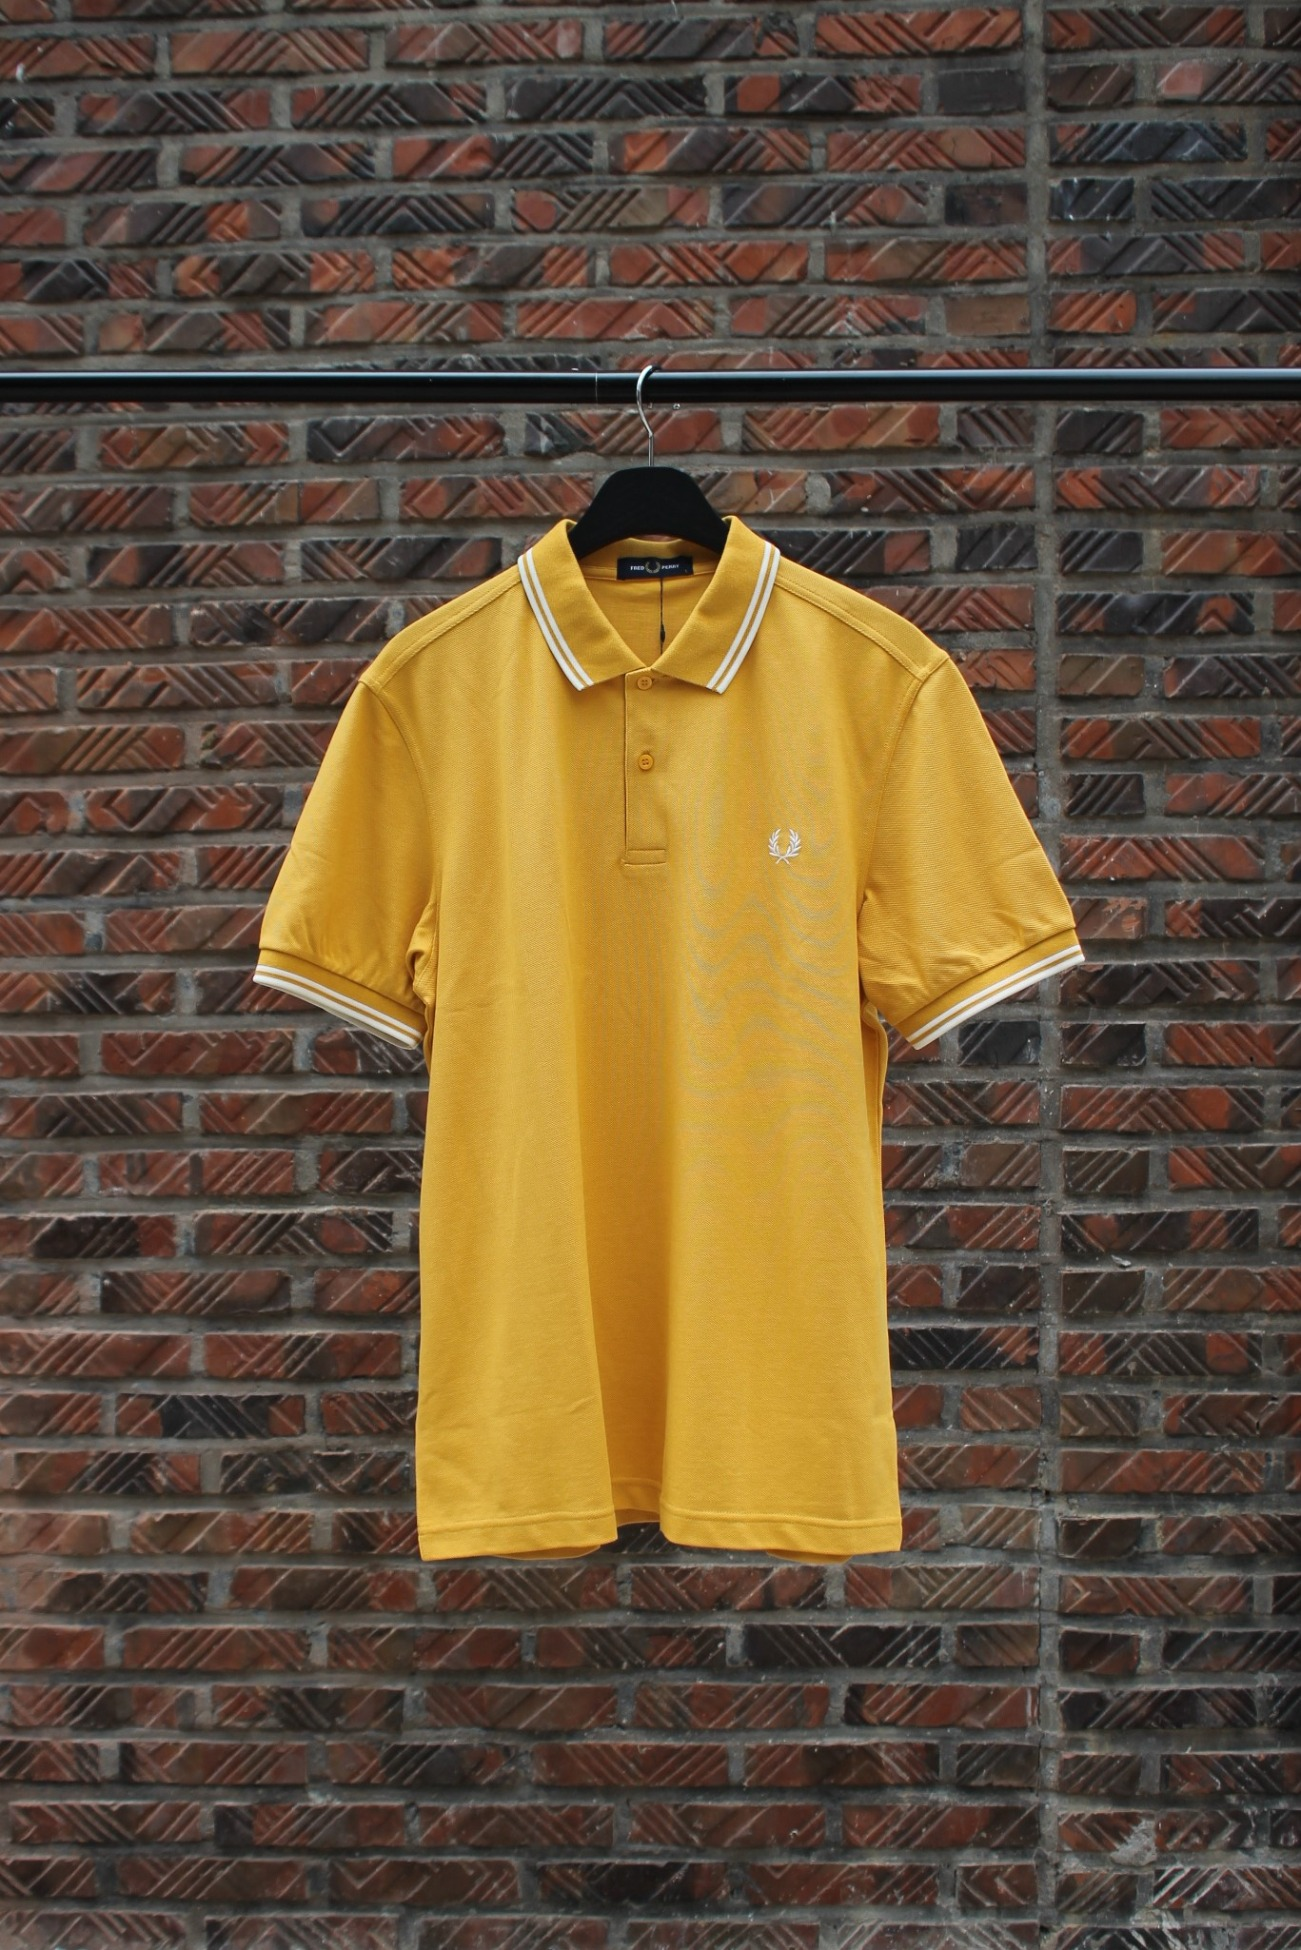 [FRED PERRY] Twin Tipped Fred Perry Shirt - Gold / Snow White